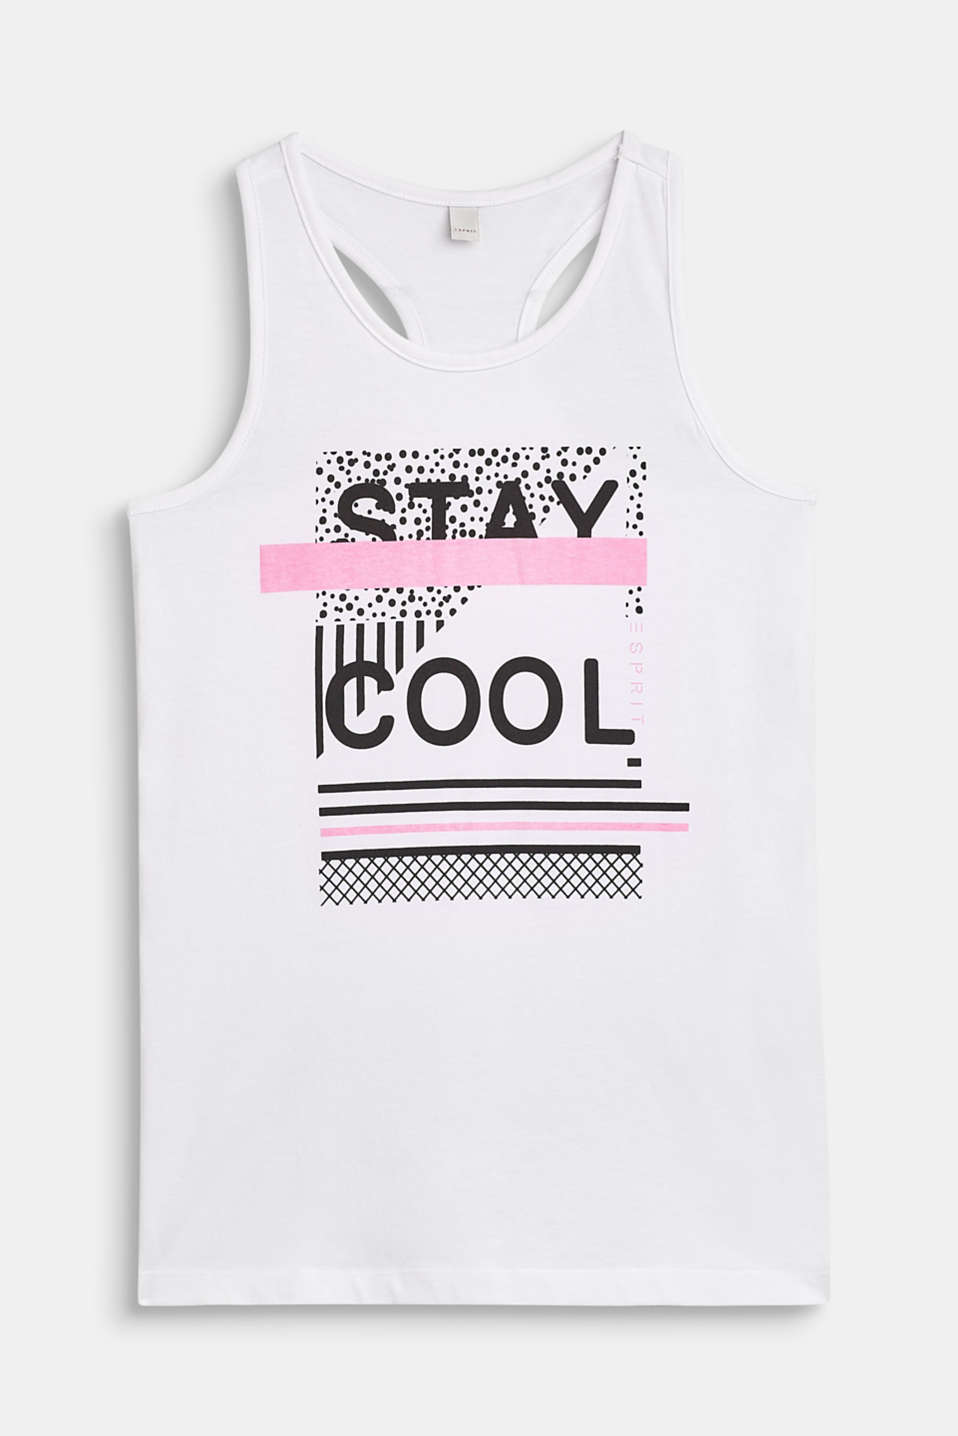 Esprit - Sleeveless top with a slogan print, 100% cotton